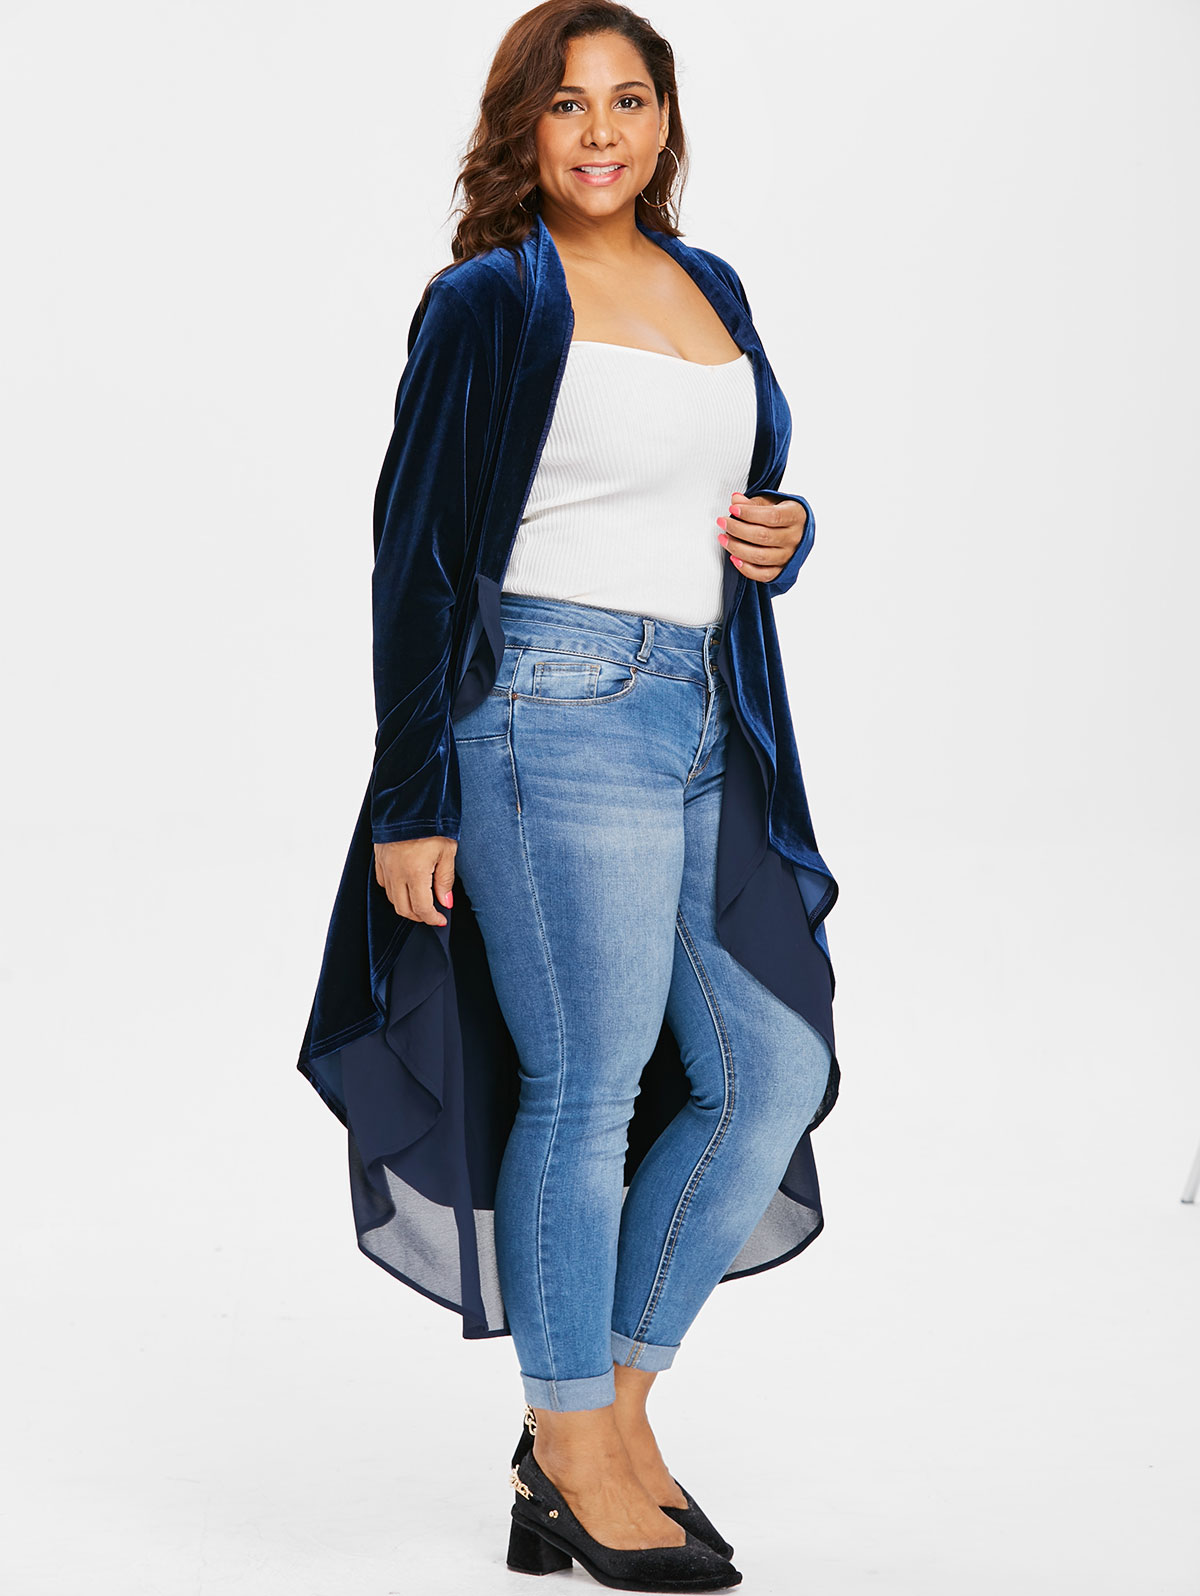 Wipalo Plus Size 5XL Open Front High Low Asymmetrical Longline Velvet Coat  Casual Solid Patchwork Flounce Jacket Coat Autumn Top-in Basic Jackets from  ... e9bb5a19e